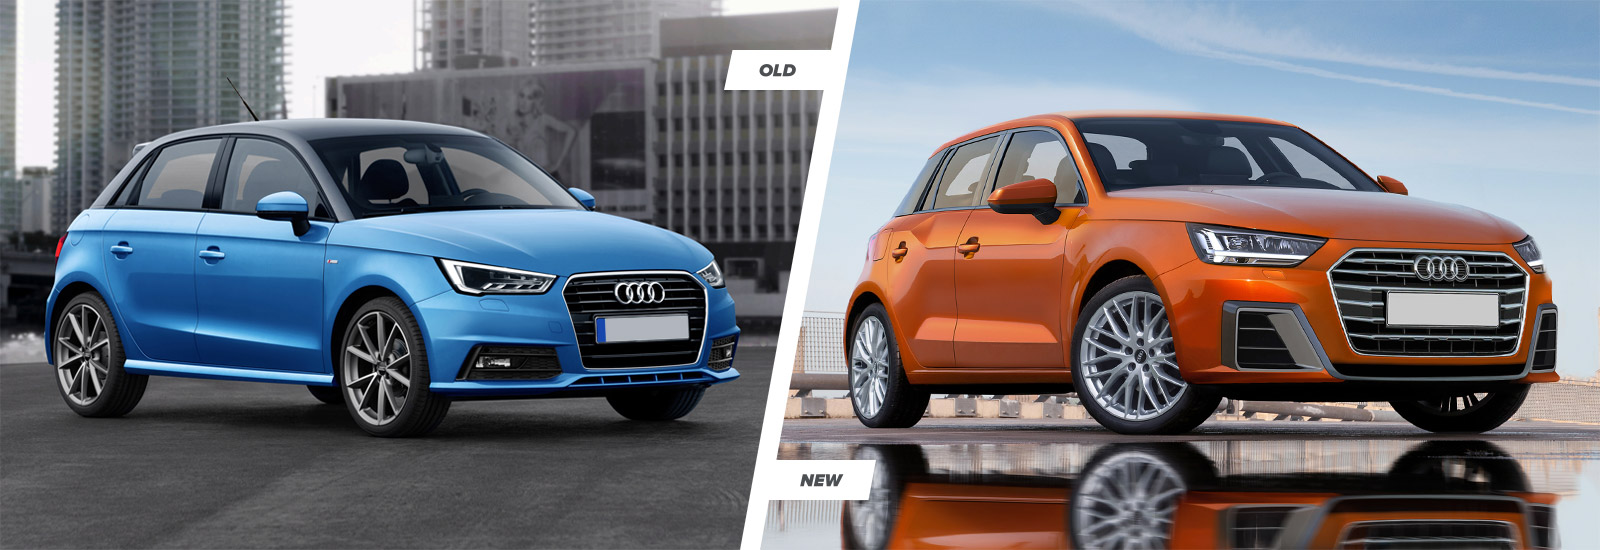 2018 audi q2. fine 2018 the new a1 should feature a squarer rear end and flatter roofline than the  old car u2013 especially in fivedoor sportback guise while q2u0027s funky  for 2018 audi q2